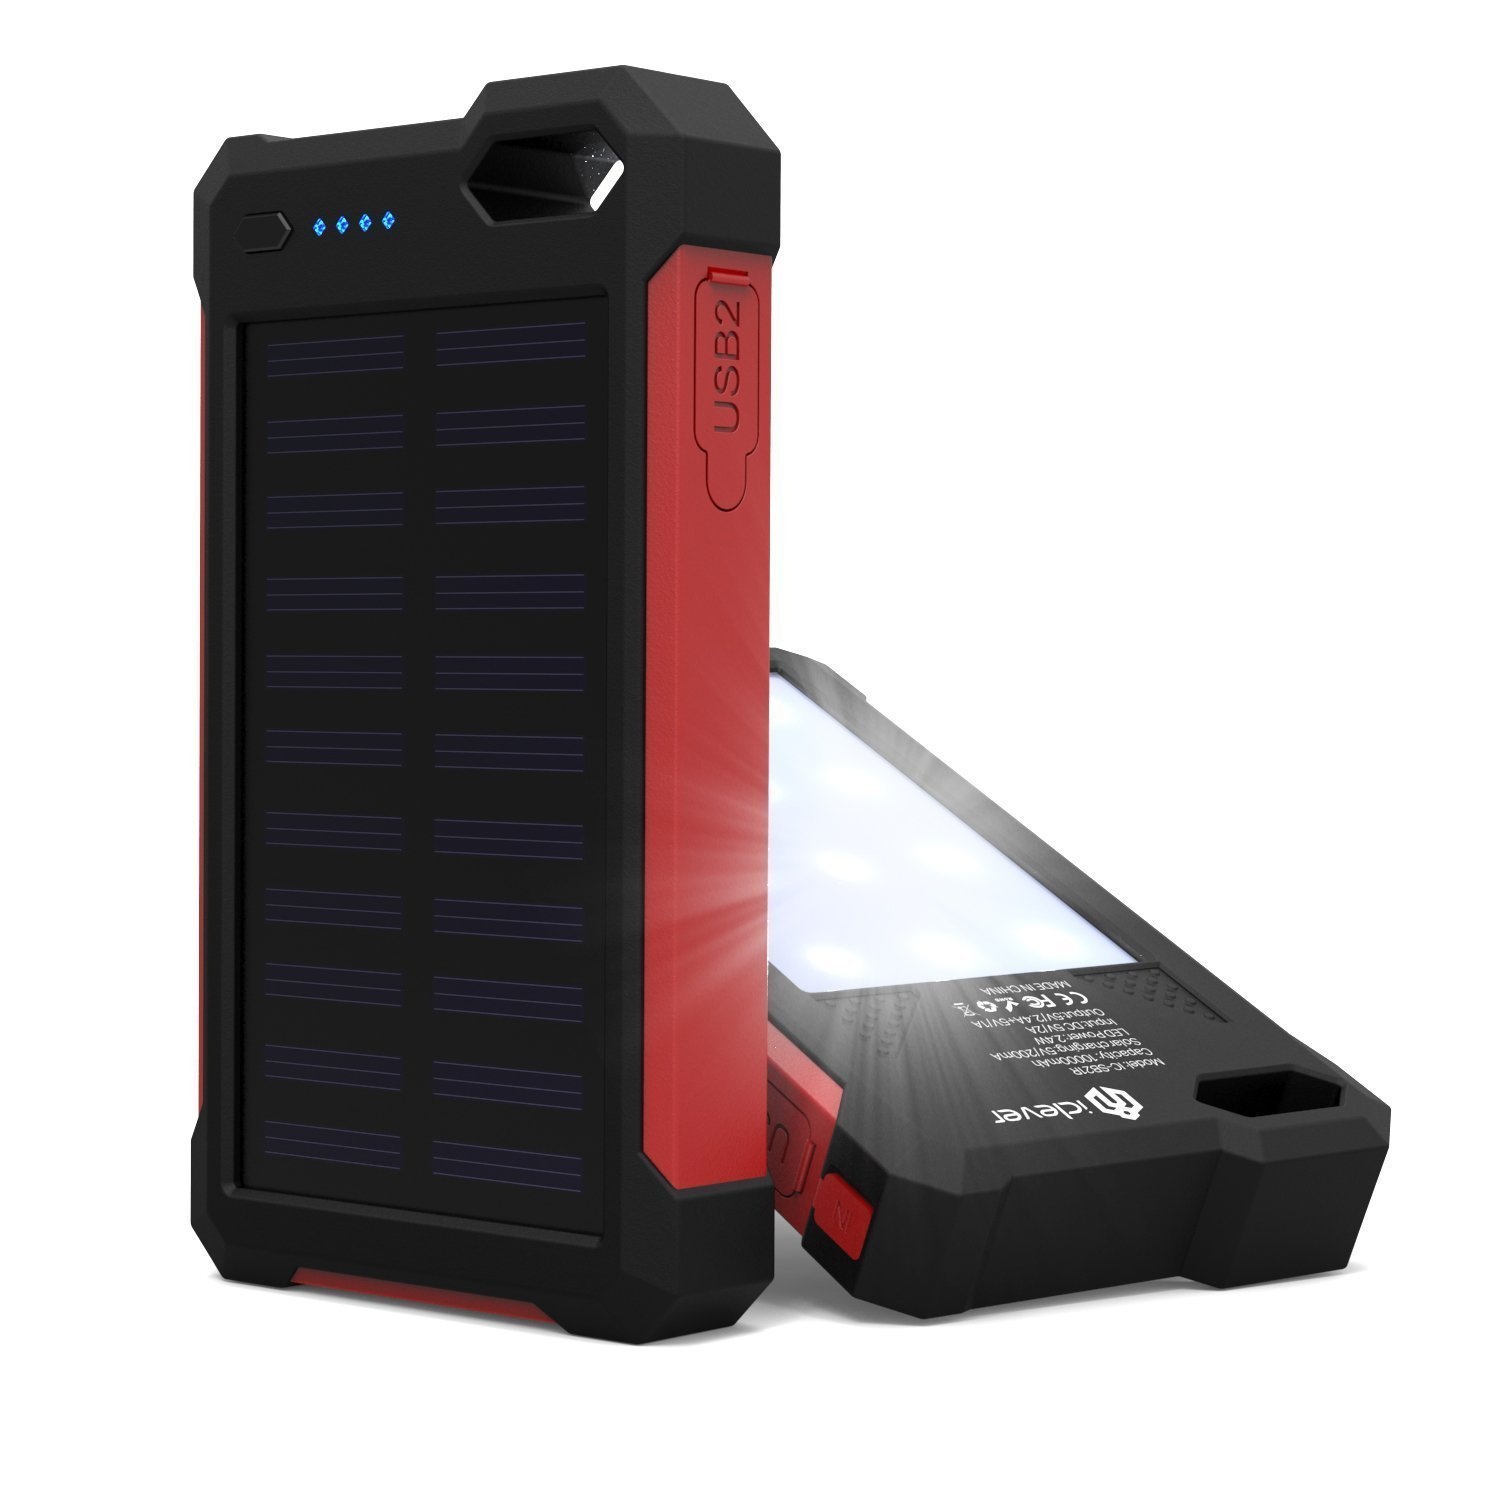 [Solar Battery Charger] iClever 10000mAh Portable Solar Power Bank Dual USB Port Charger Battery with Led Light, IP67 Waterproof Solar Charger for iPhone, iPad, iPod, Samsung, Android phones